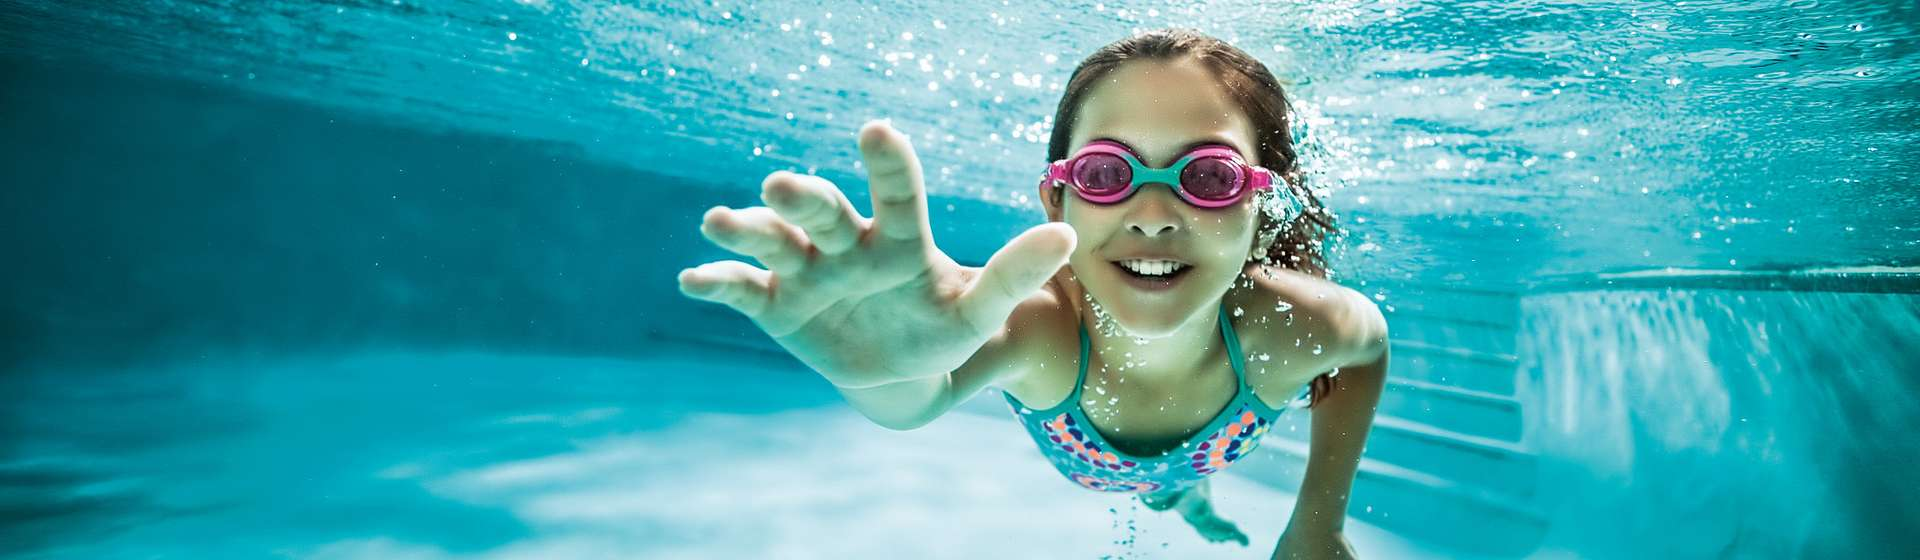 Little girl swimming underwater in a pool.